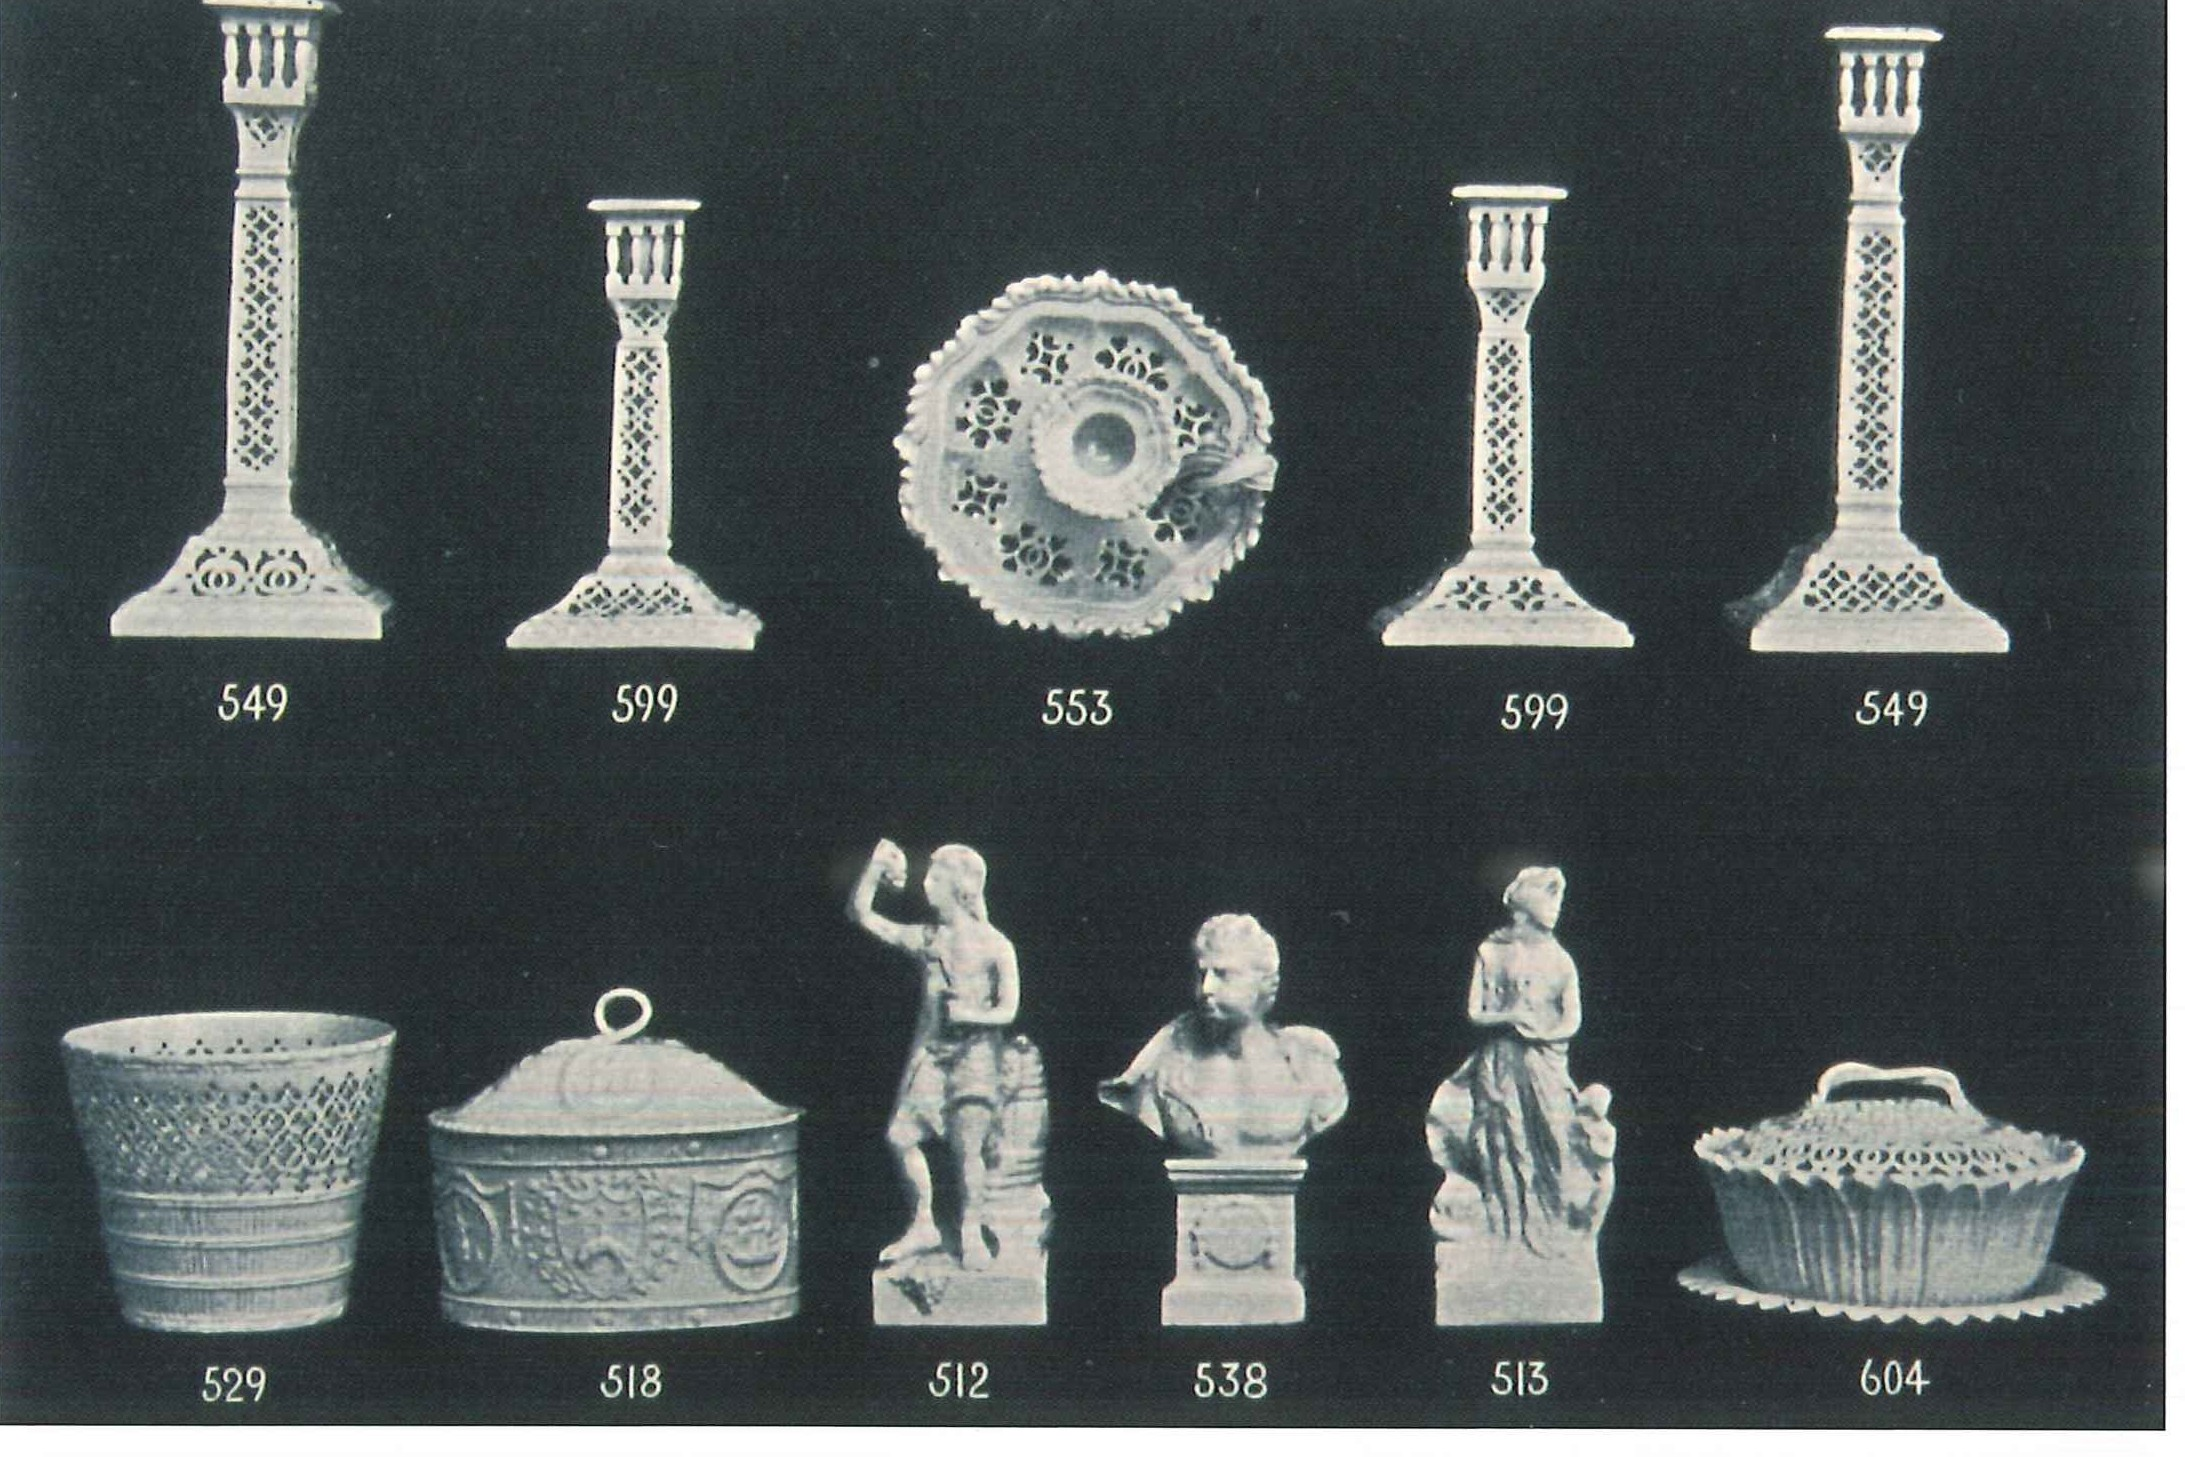 From  Reproductions of Leeds Pottery, Queen's Ware, Decorated and Silver Lustre, Basalt, & c., & c.,  W. W. Slee,  30 Duncan St., Leeds, England , 1913. From John Griffin's  The Leeds Pottery, 1770-1881 , Vol. 2.